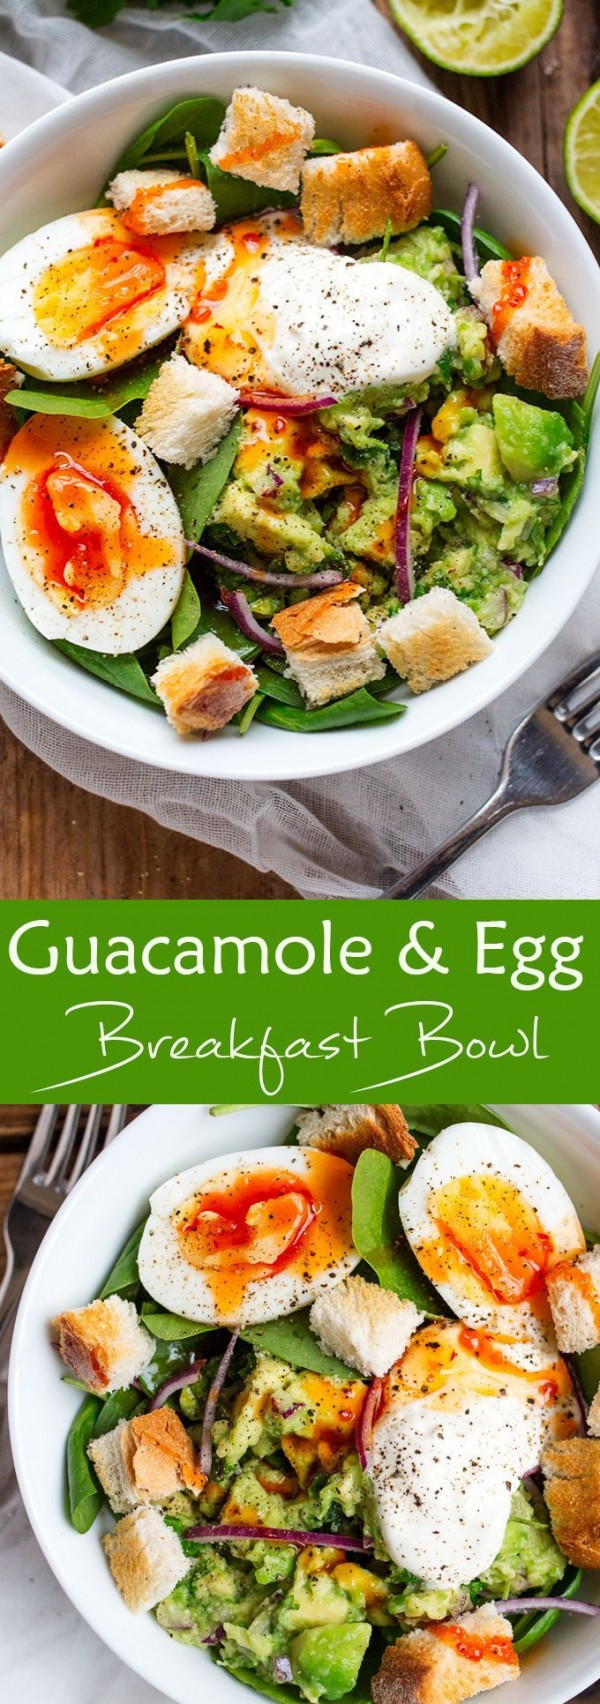 Check out this recipe for breakfast guacamole and egg bowl. Yummy! #RecipeIdeas @recipes_to_go